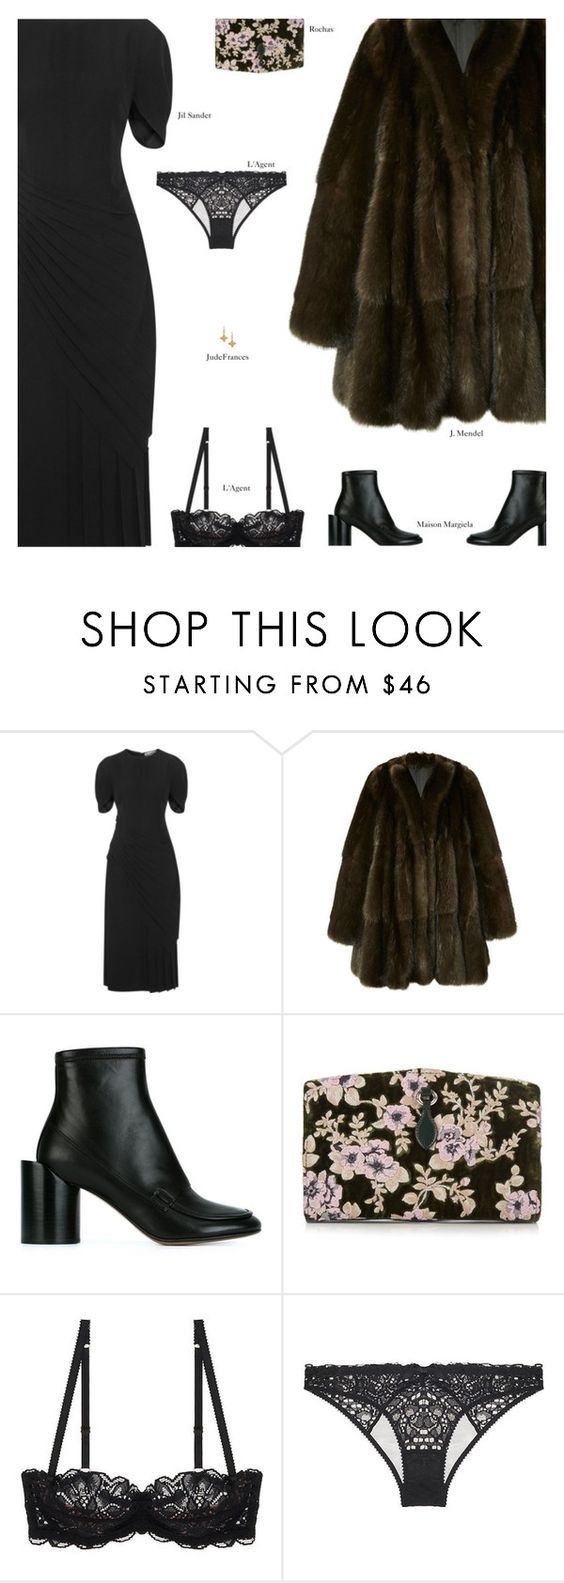 """""""Untitled #4014"""" by amberelb ❤ liked on Polyvore featuring Jil Sander, J. Mendel, Maison Margiela, Rochas, L'Agent By Agent Provocateur and JudeFrances"""